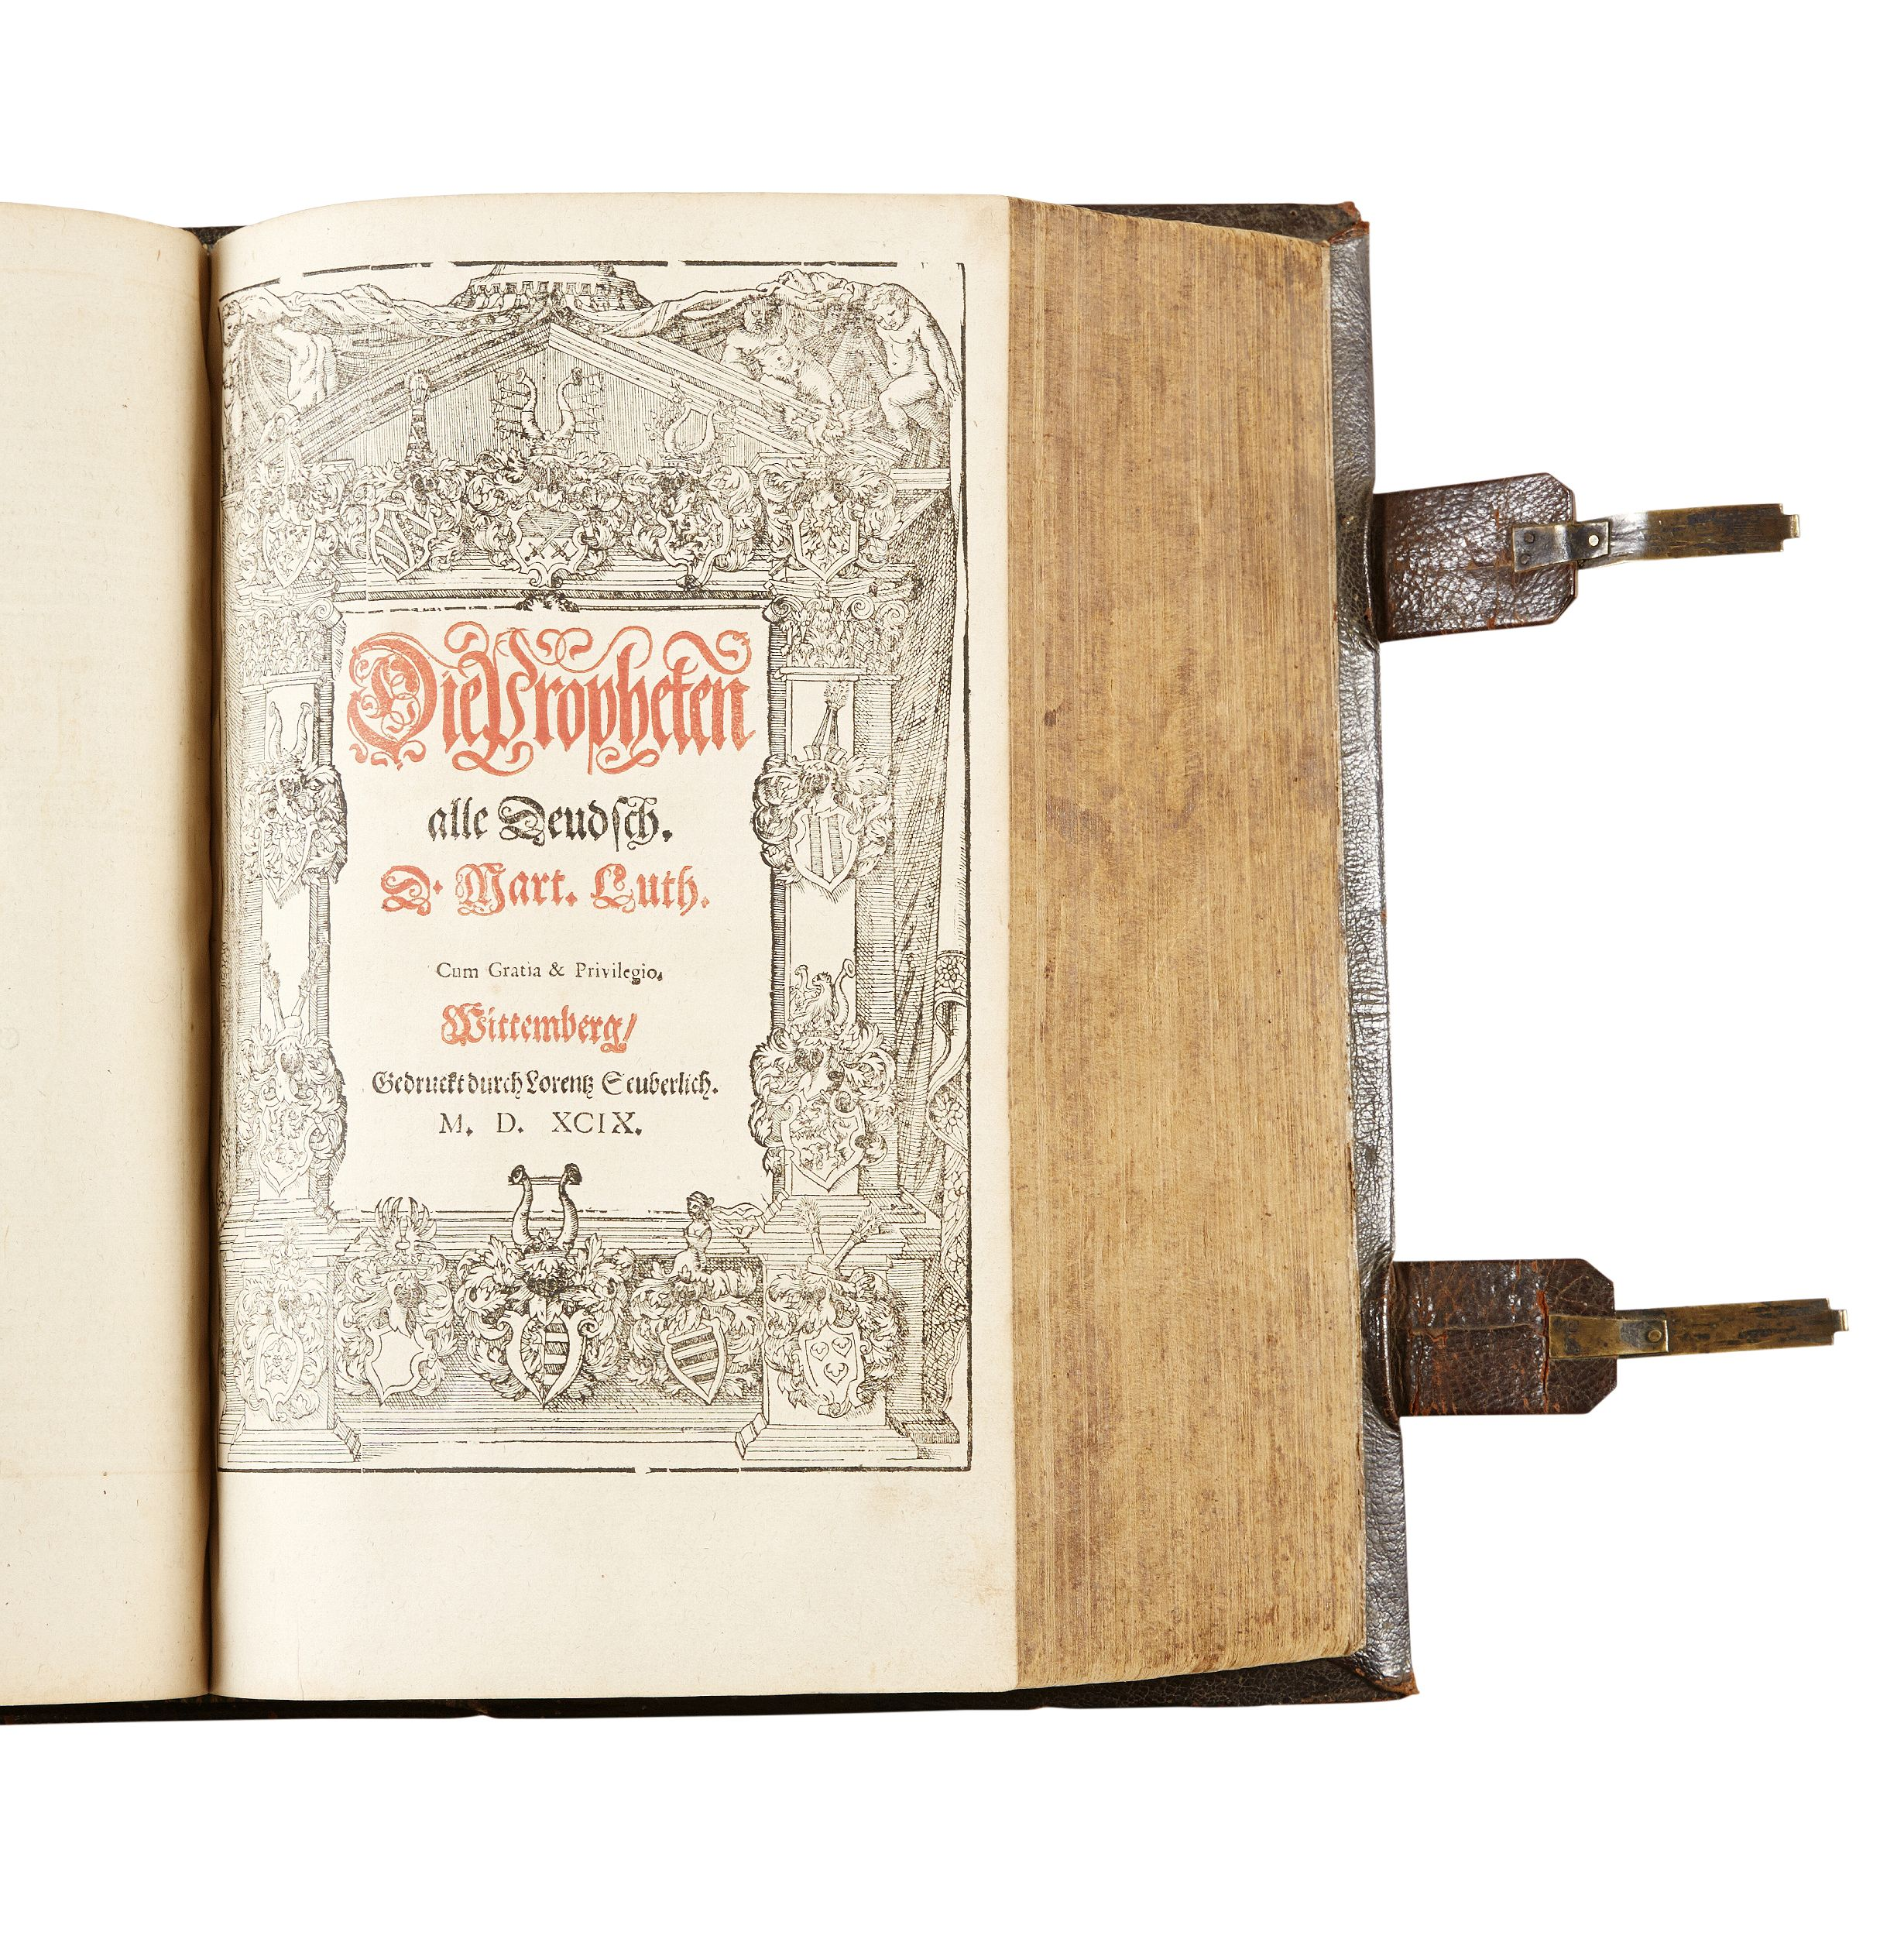 Illustrated German 16th century bible